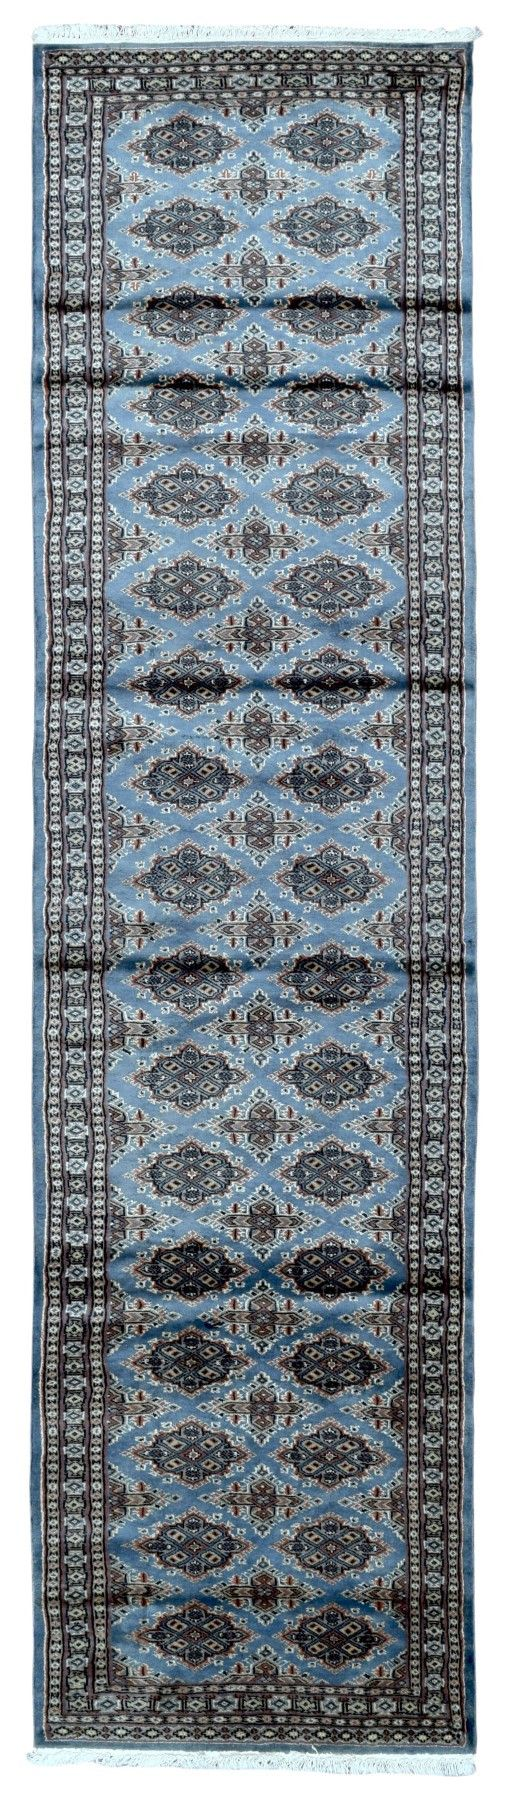 Pakistan Royal Bukhara Oriental Long Runner Rug 2'6X10'